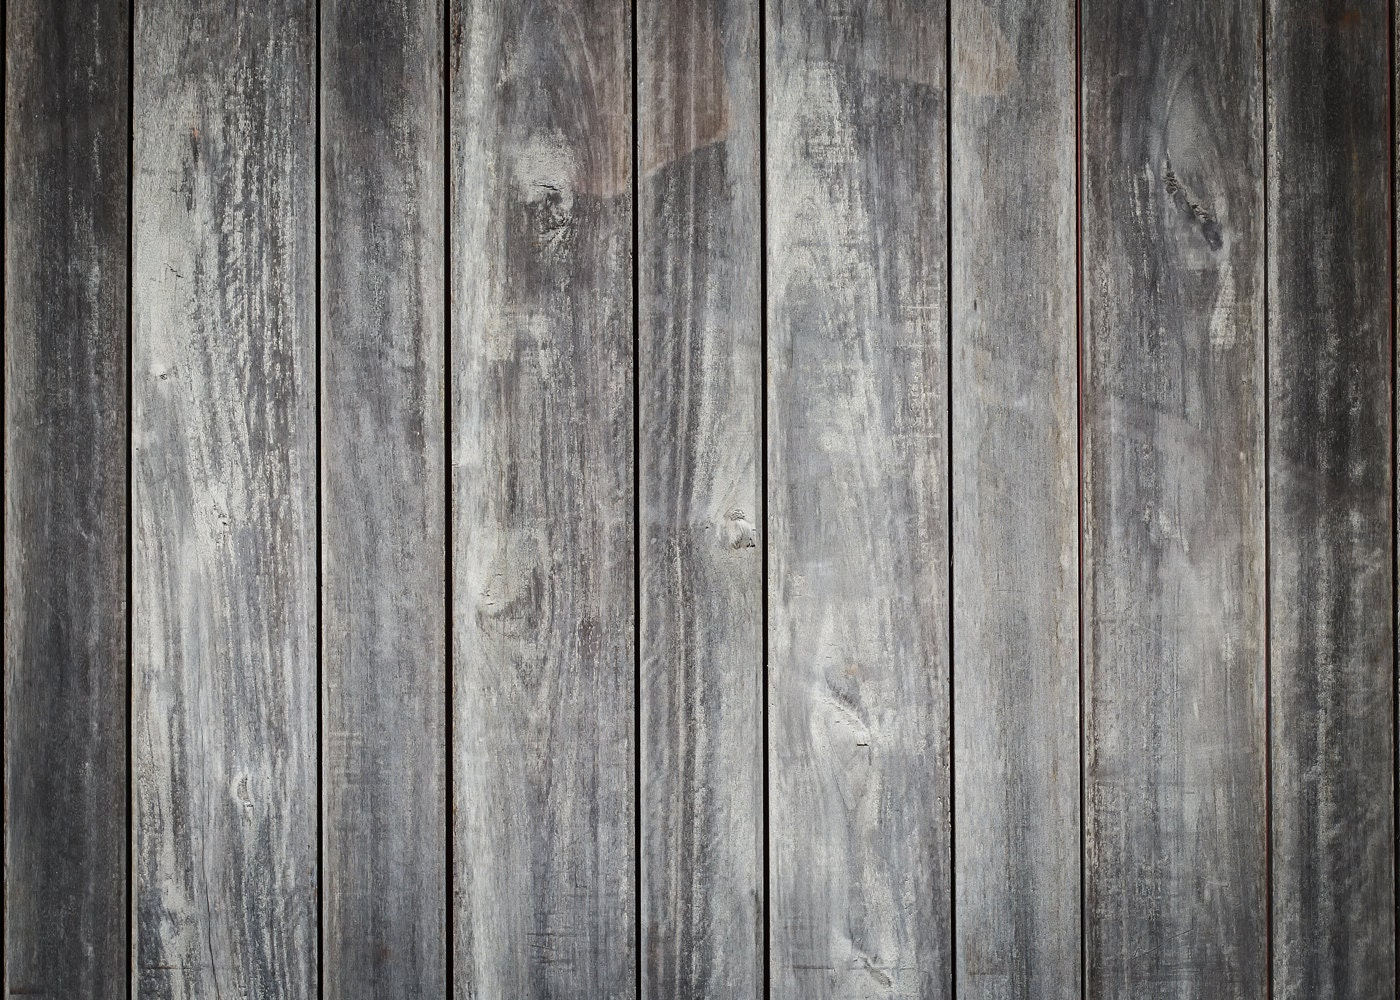 rustic wood floor background. Grey Wood Backdrop - Brushed Rustic Gray Planks Floor Printed Fabric Photography Background G0784